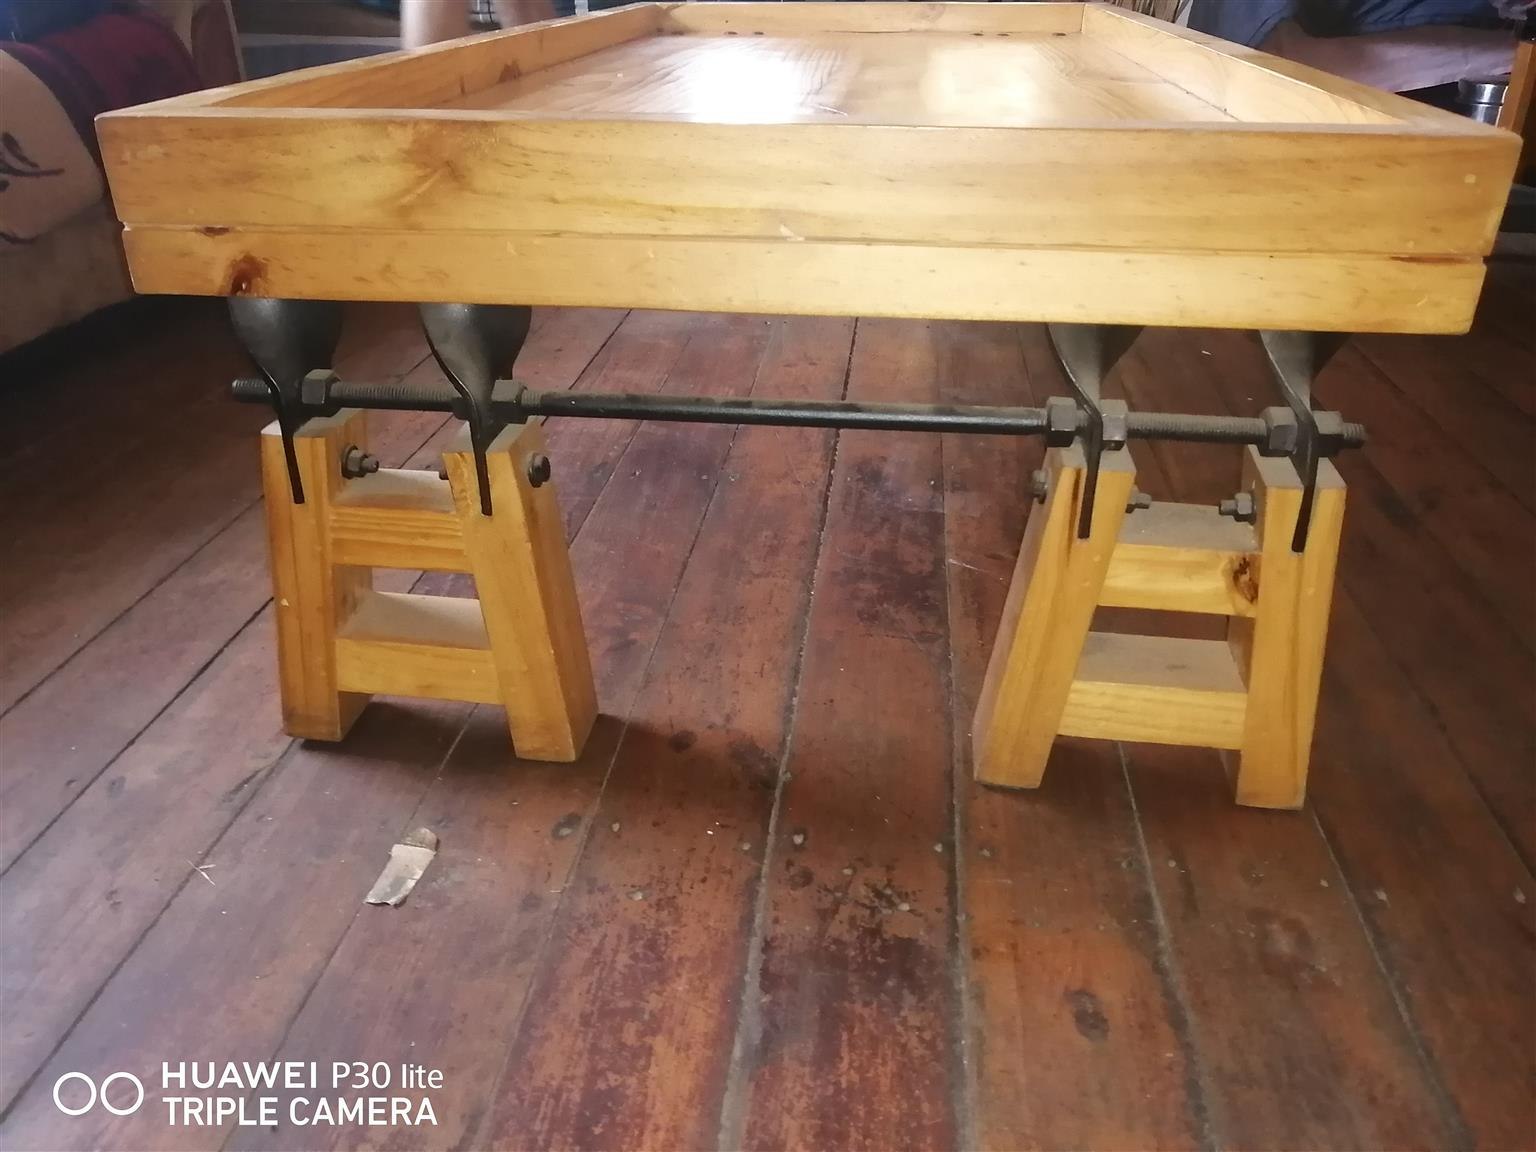 Beautiful solid oak table 1 of a kind ideal for game nights and so on price is negotiable